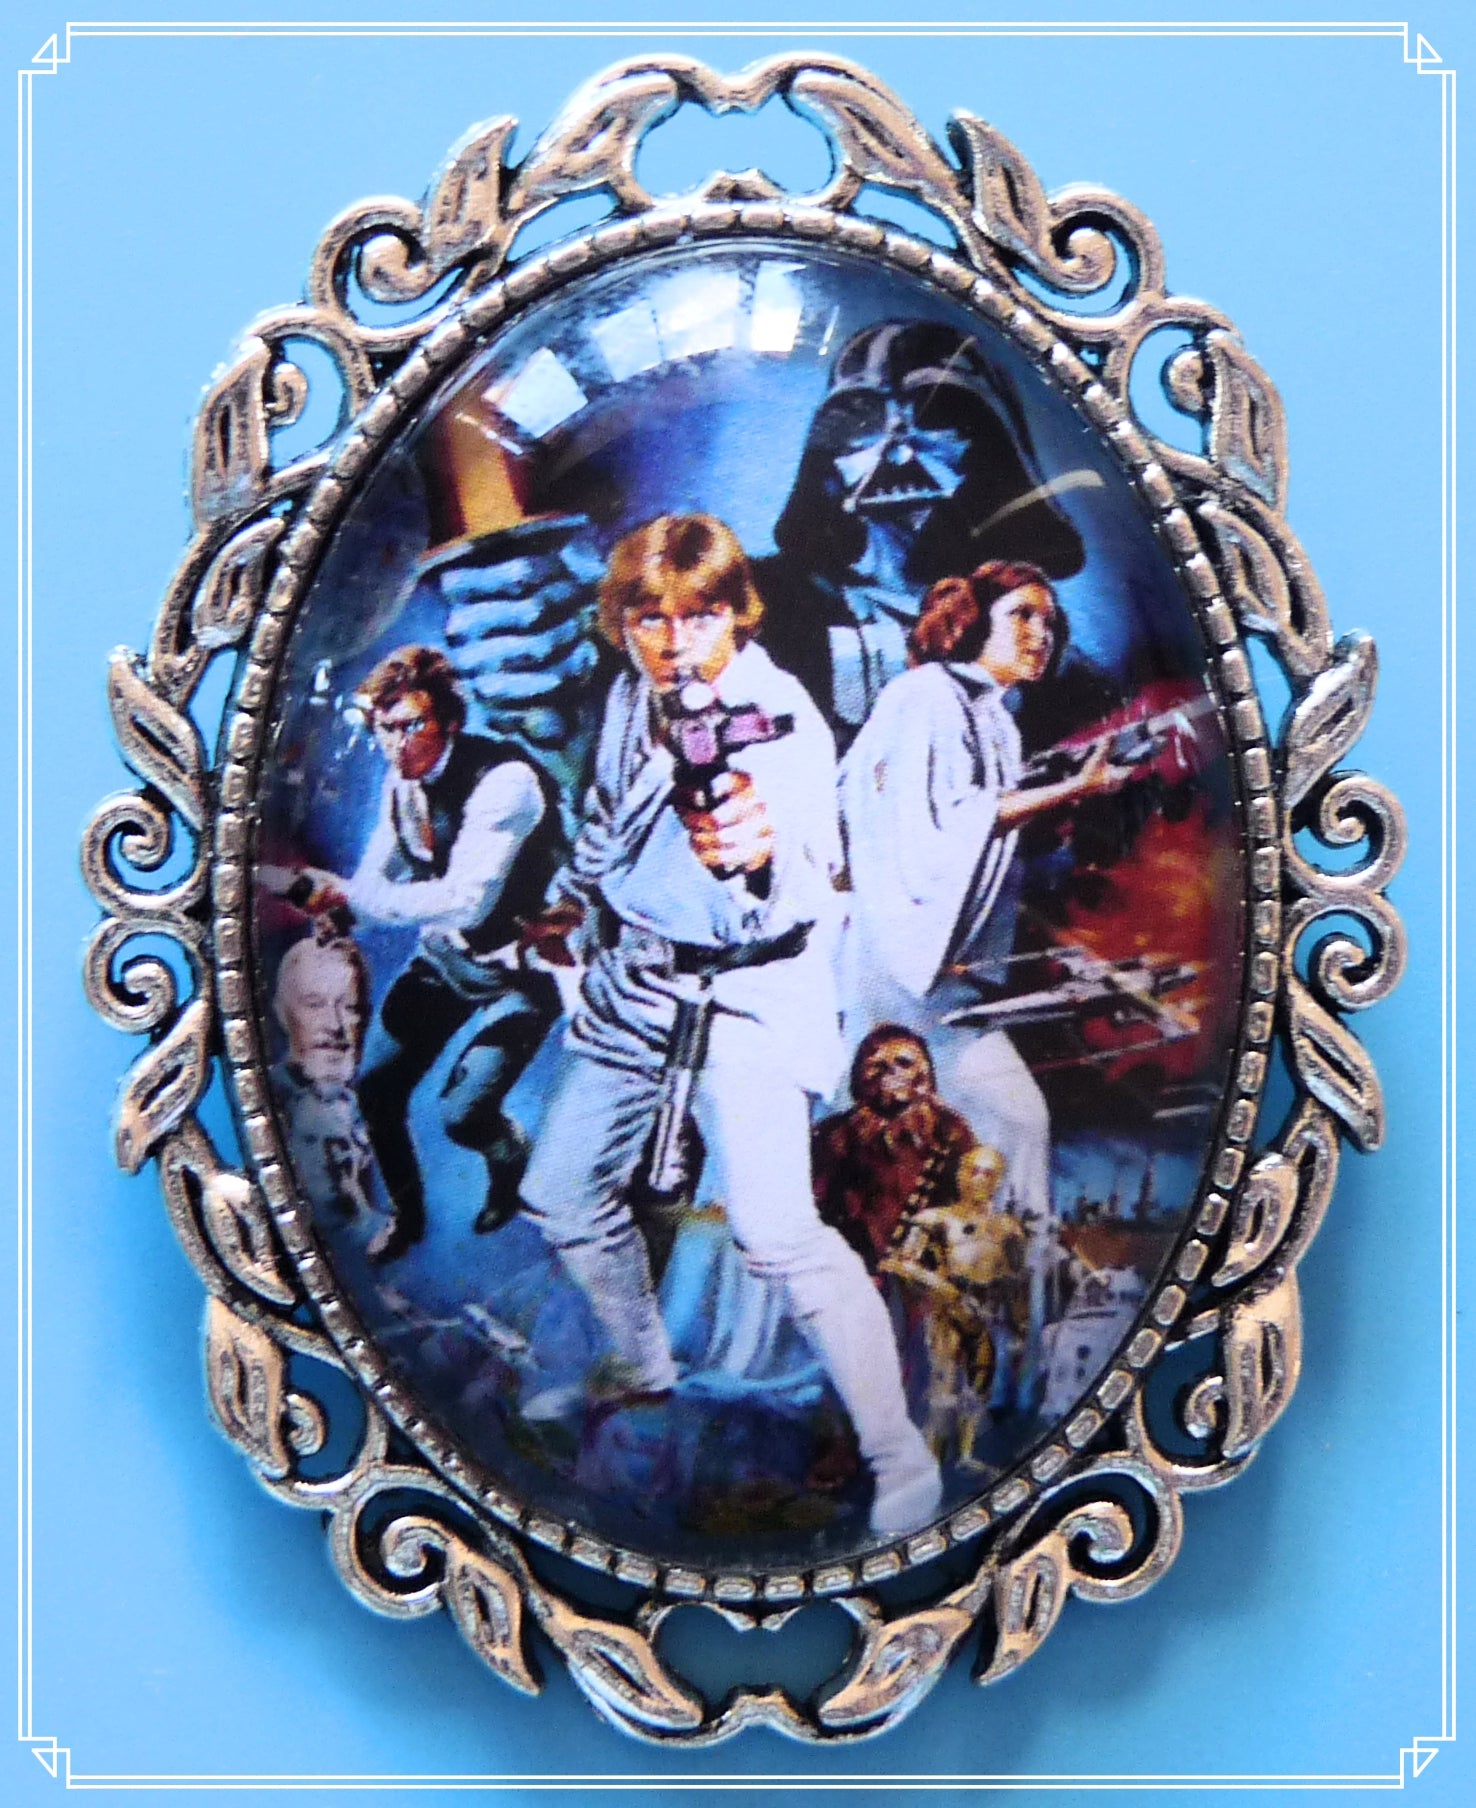 The A New Hope brooch is part of my Sci-Fi collection and a homage to the original Star Wars films.